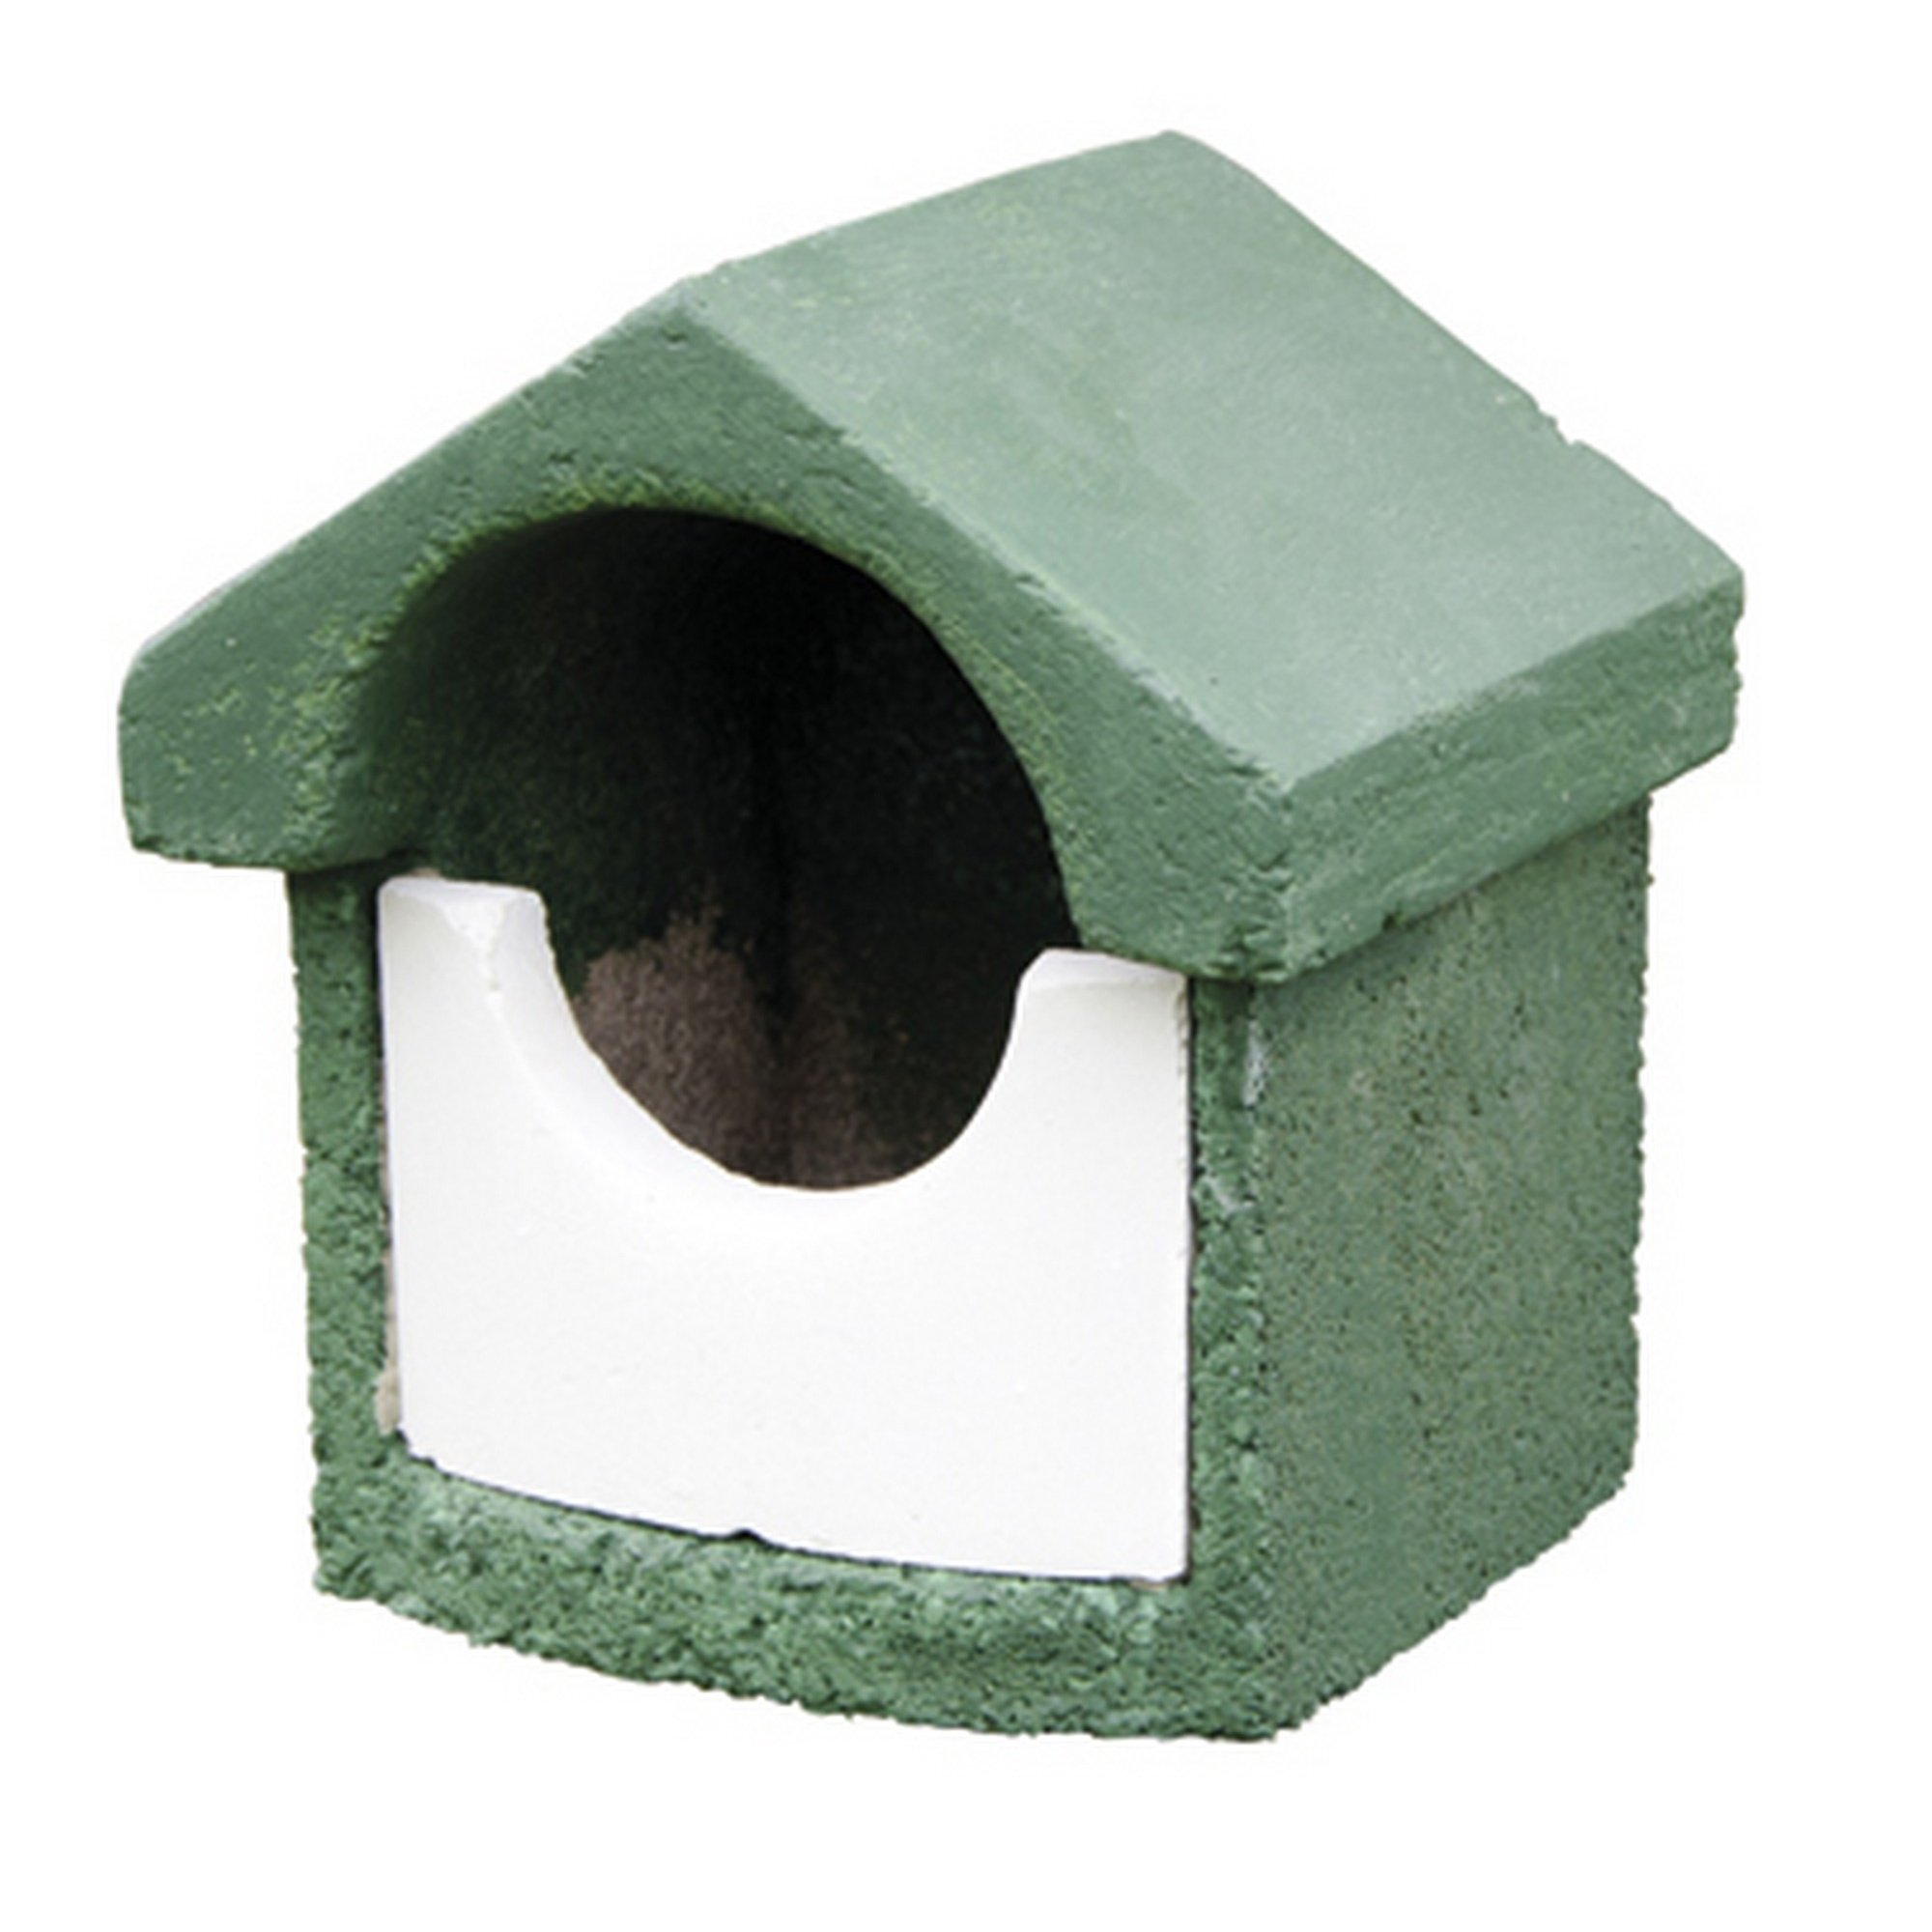 C J WoodStone Durable Open Nest Box (Small) (Green)